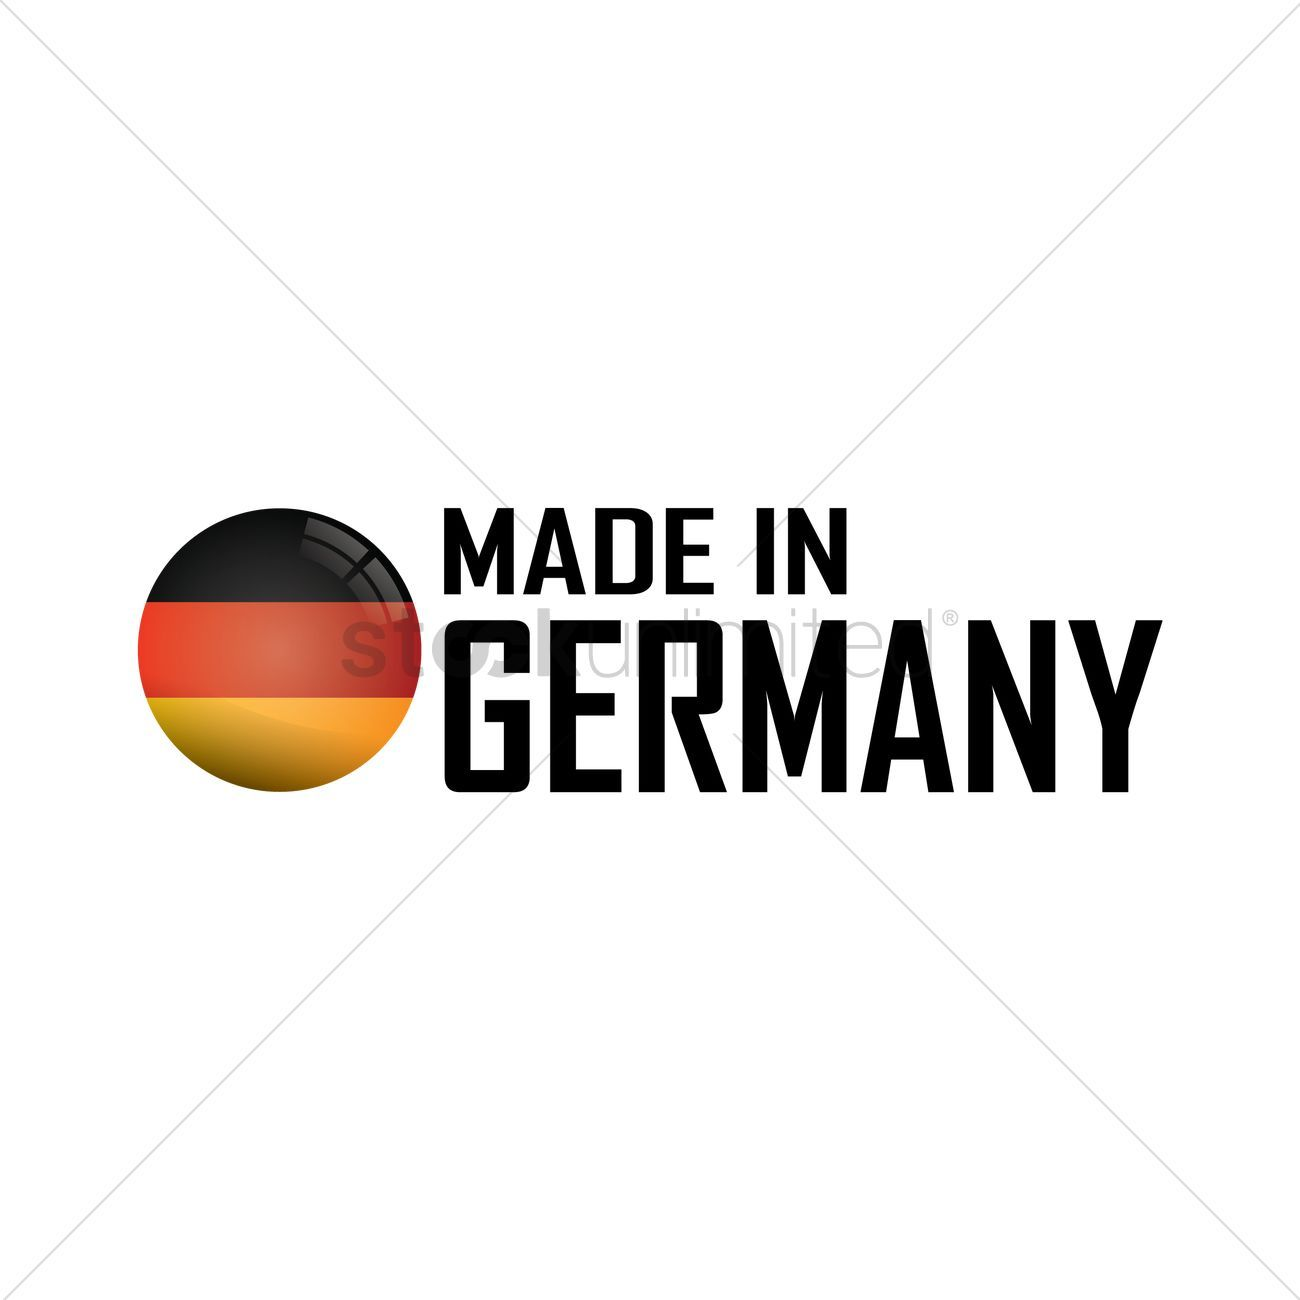 Grunge Stamp Football Fans Name Germany Stock Vector (Royalty Free)  103589648